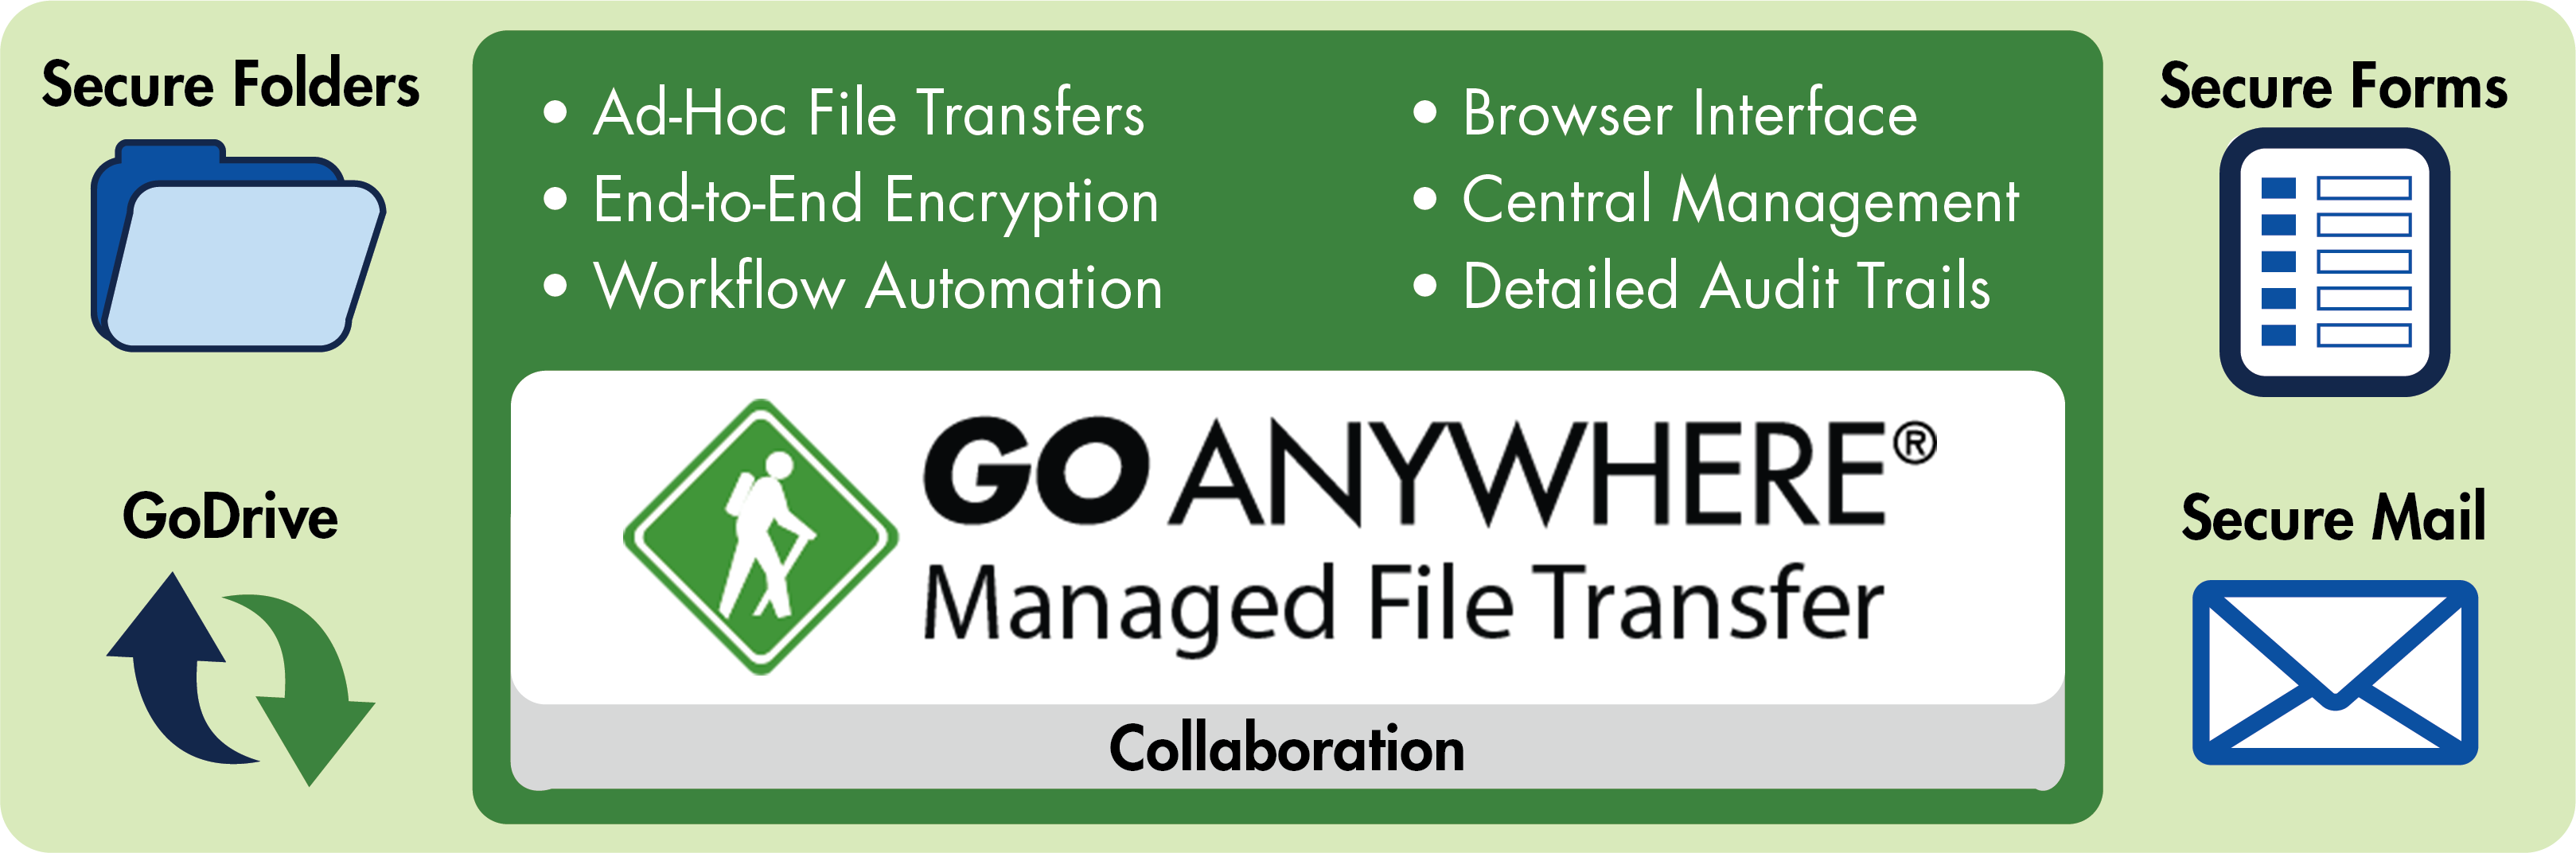 GoAnywhere MFT : Collaboration